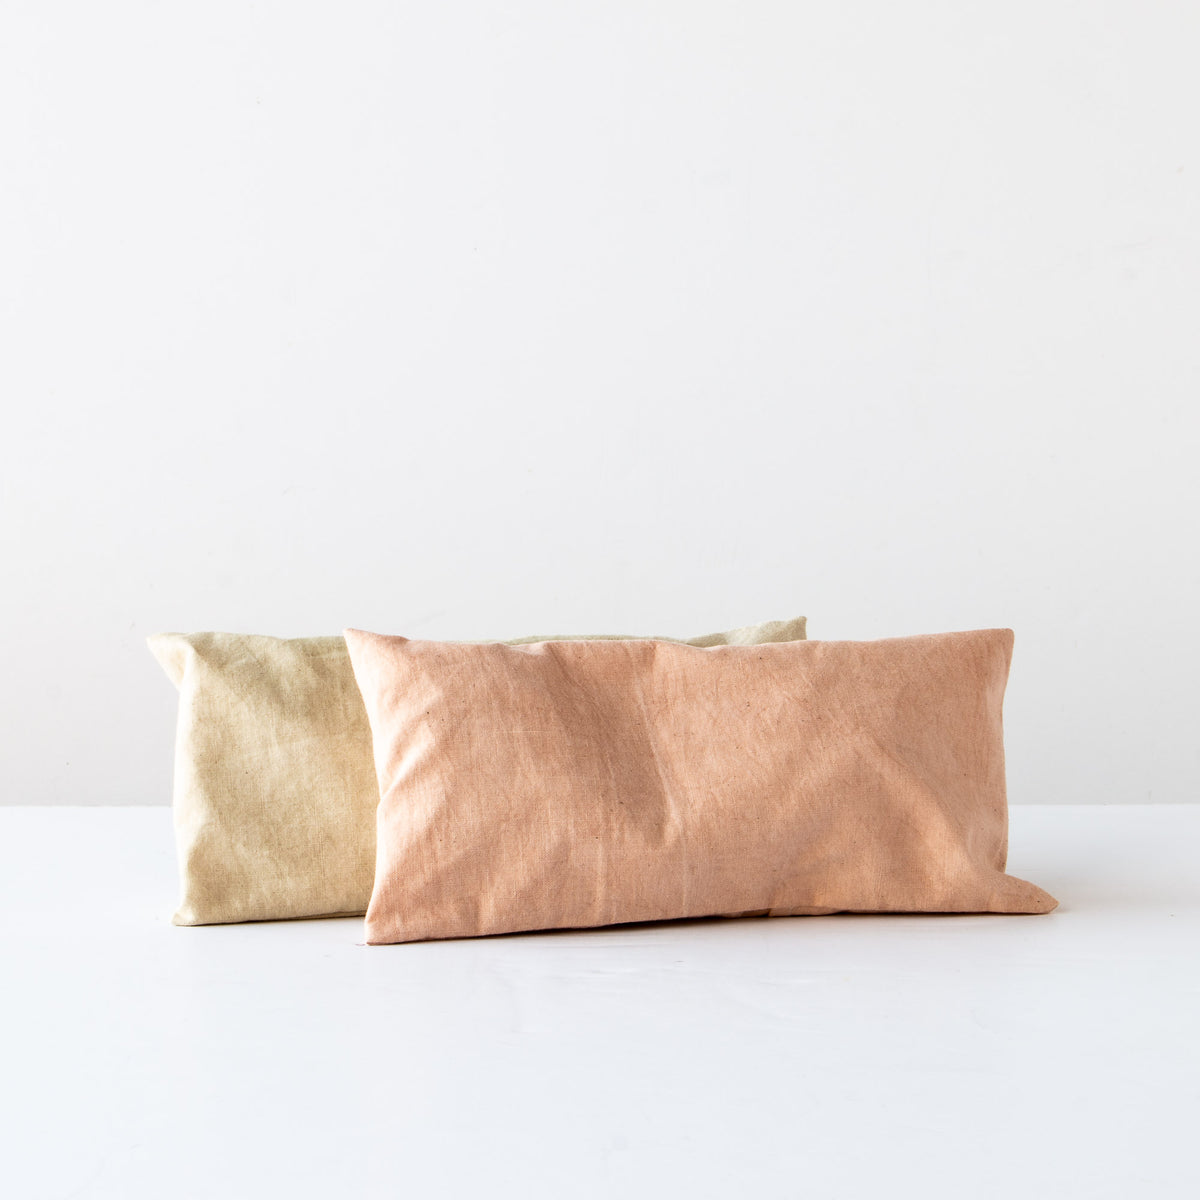 Organic Cotton Lavender Aromatherapy Eye Pillows - Sold by Chic & Basta